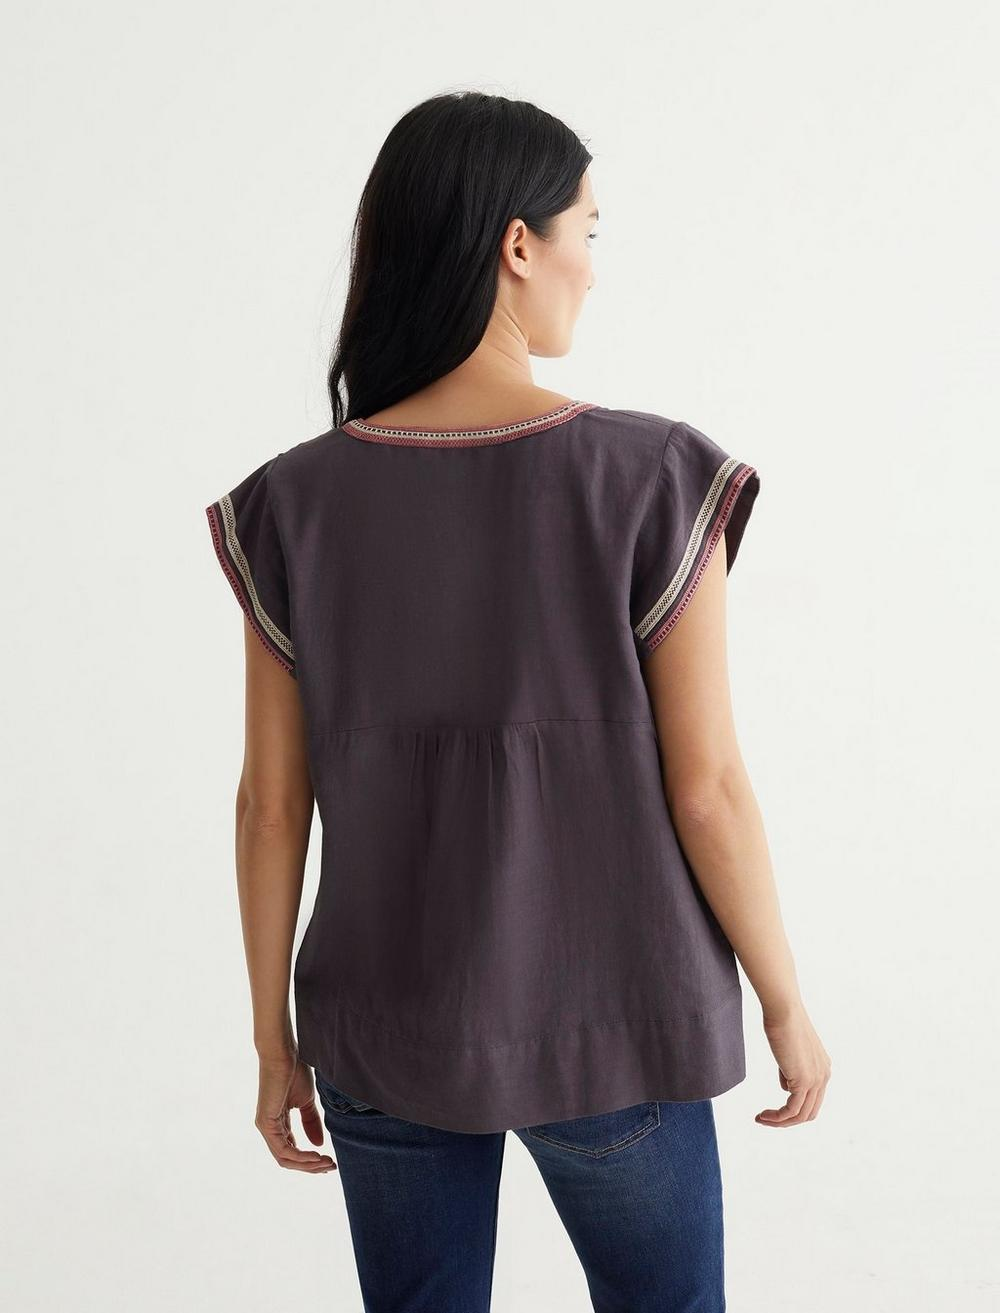 EMBROIDERED WOVEN TOP, image 4